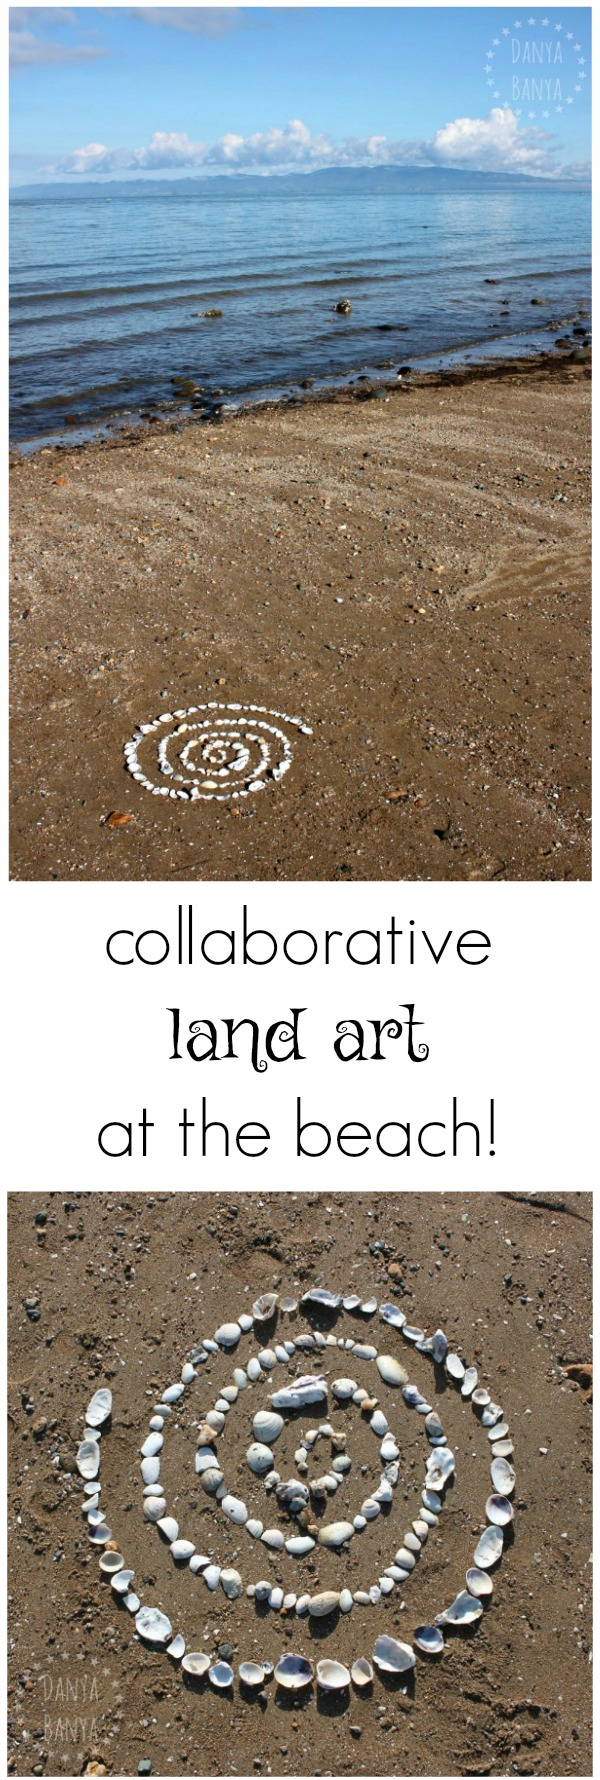 Shell spiral - collaborative land art for kids at the the beach.